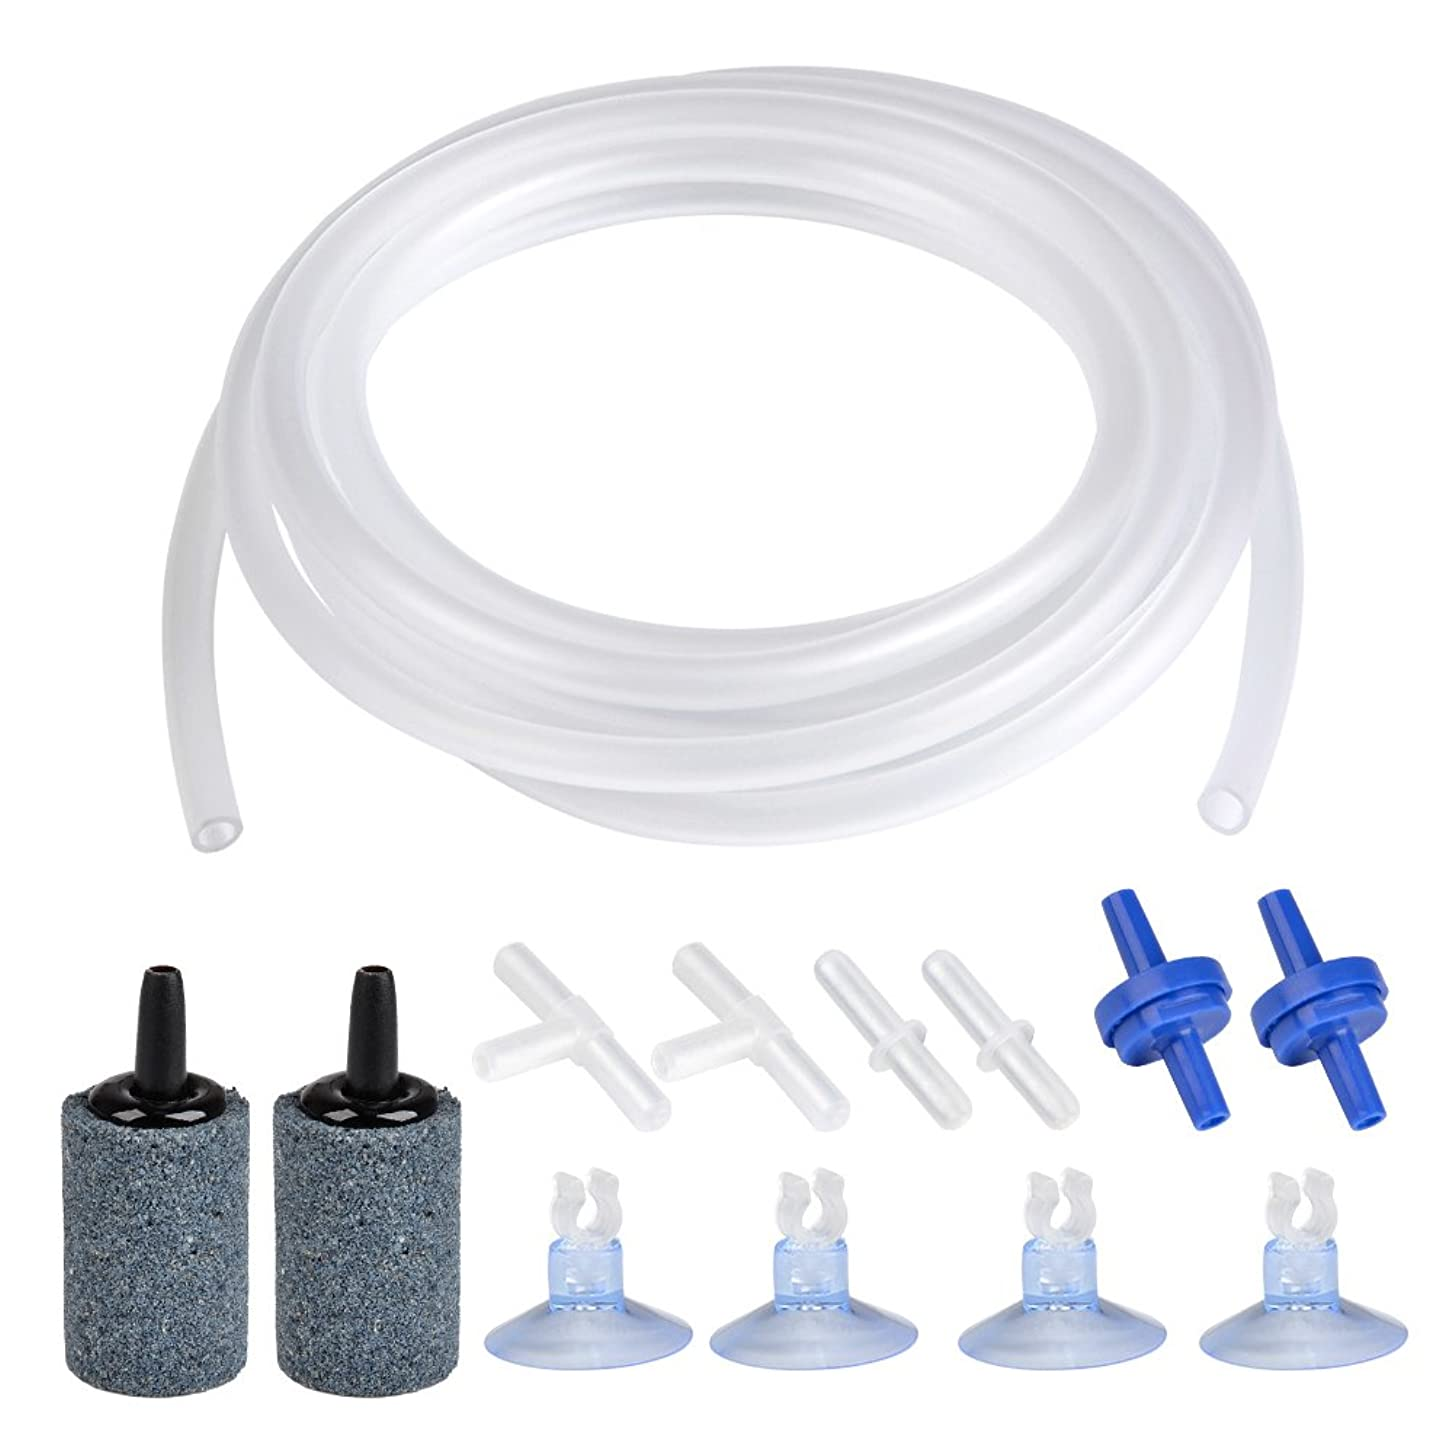 ATPWONZ 6.5 Feet Standard 3/16 Airline Tubing Air Pump Accessories Set, 2 Bubble Release Air Stones + 2 Check Valves + 4 Suction Cup Clips + 2 Straight Connectors + 2 T-connectors